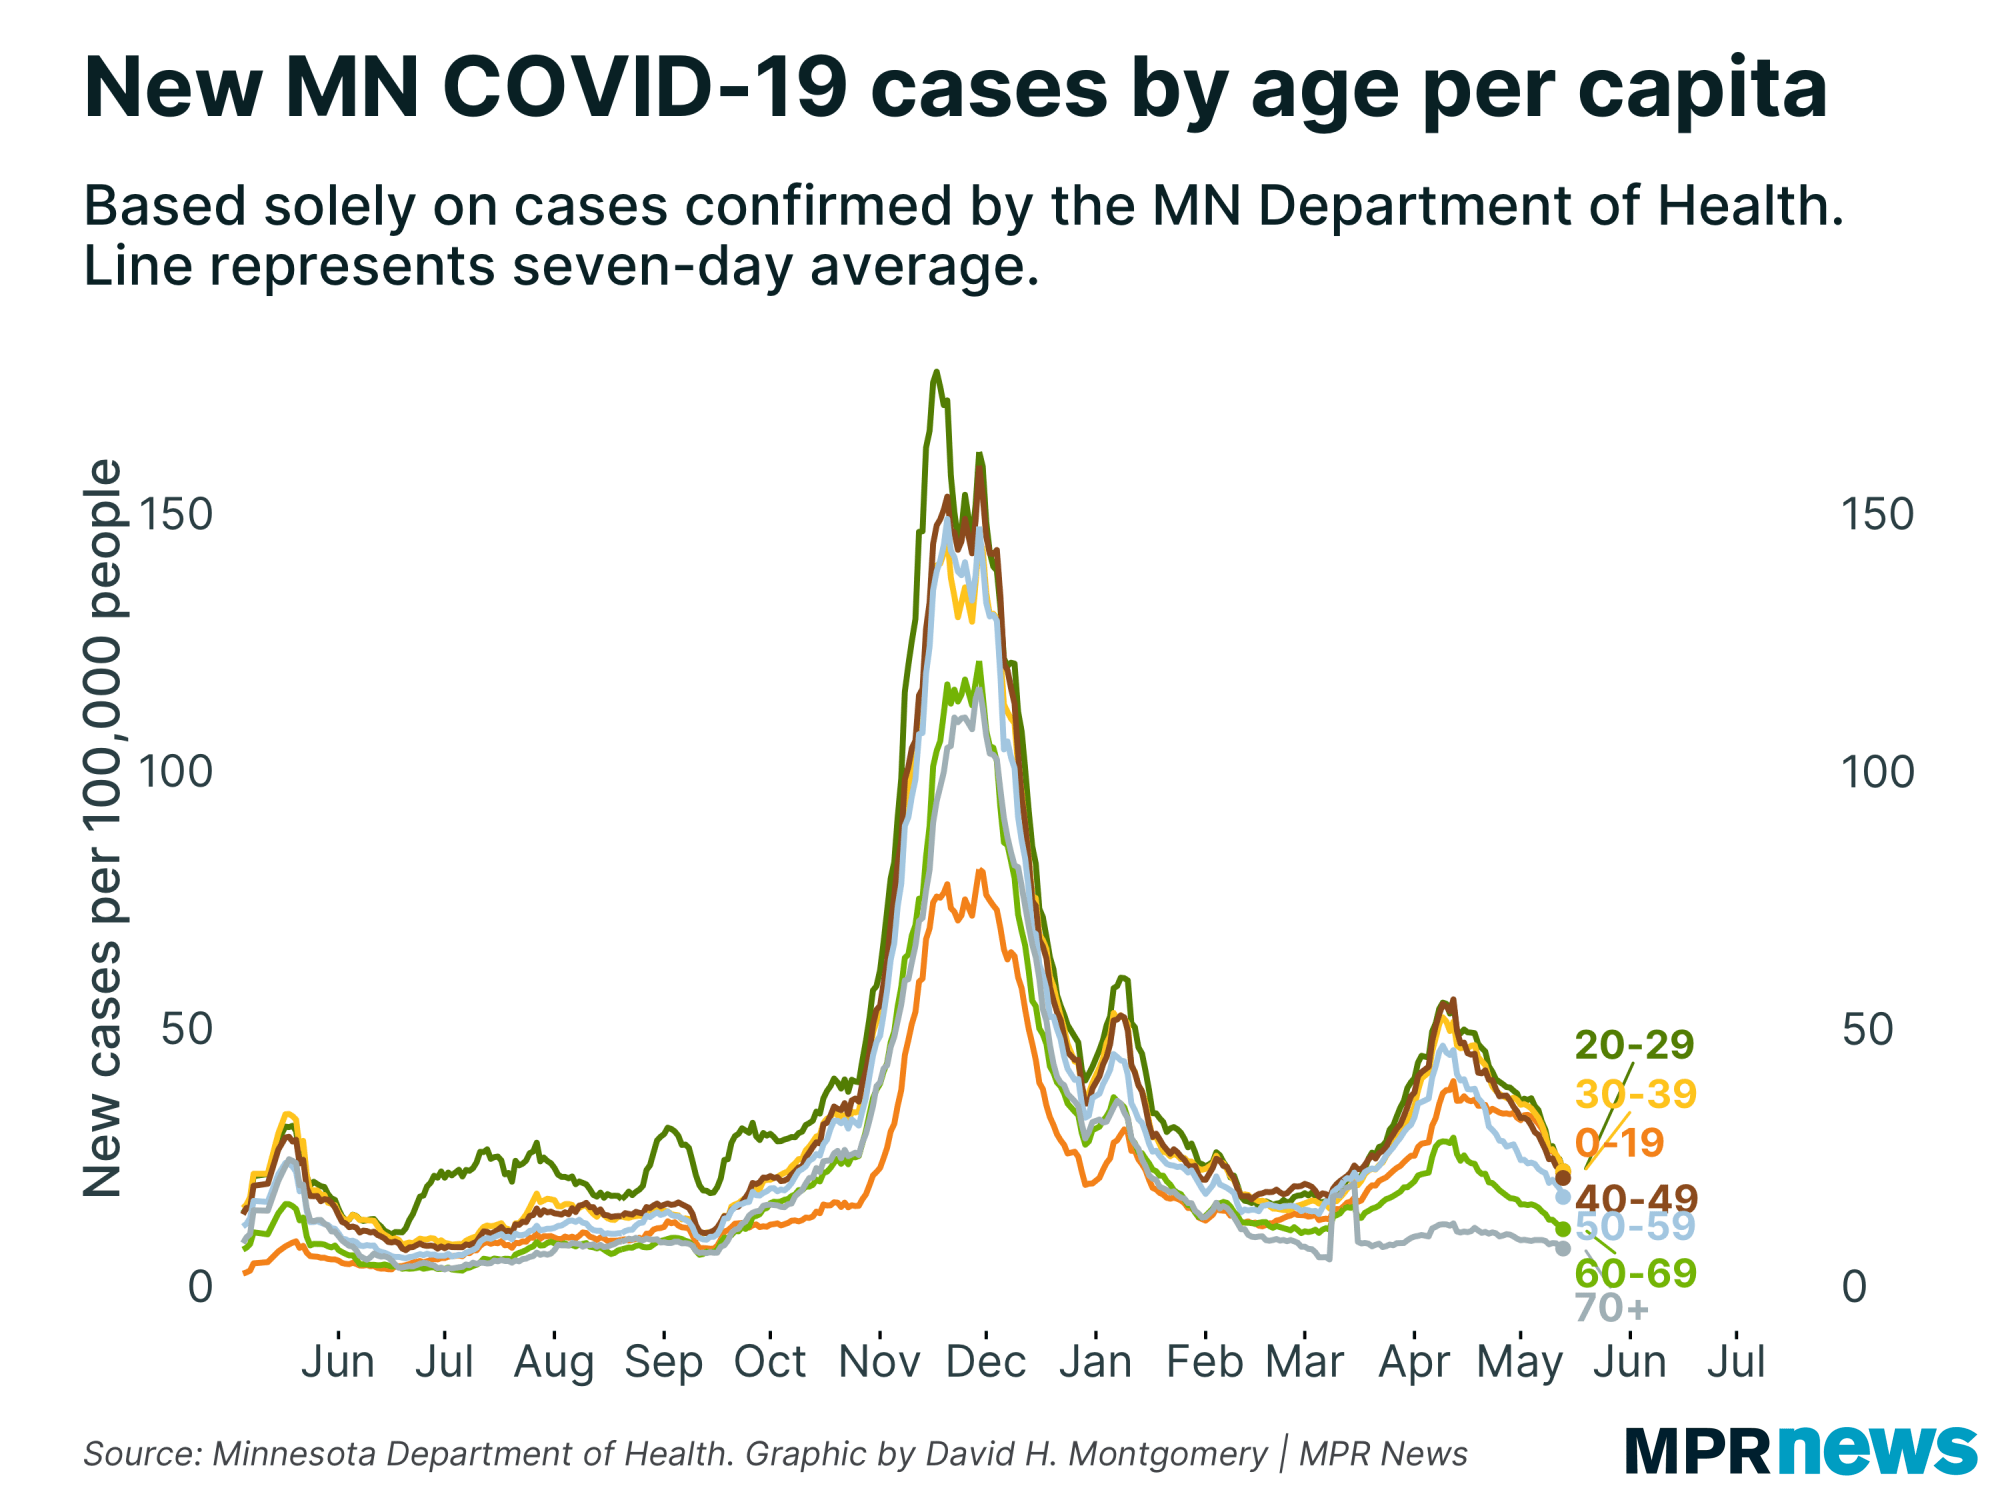 New Minnesota COVID-19 cases by age, adjusted for population